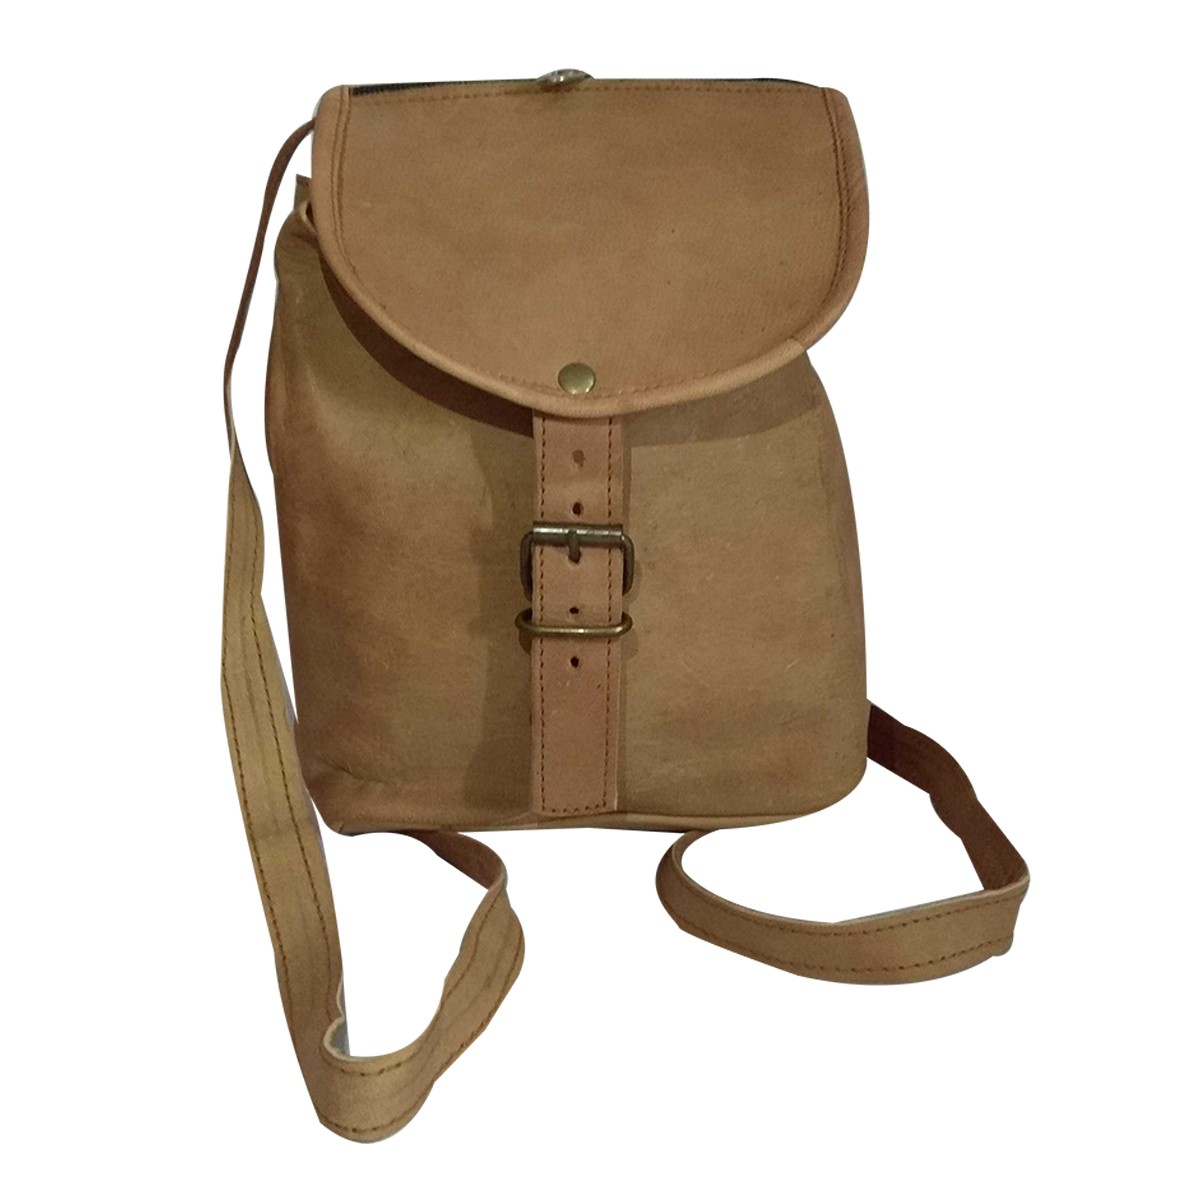 Handmade Beige Genuine Leather Vintage Backpack by Rural Artisans